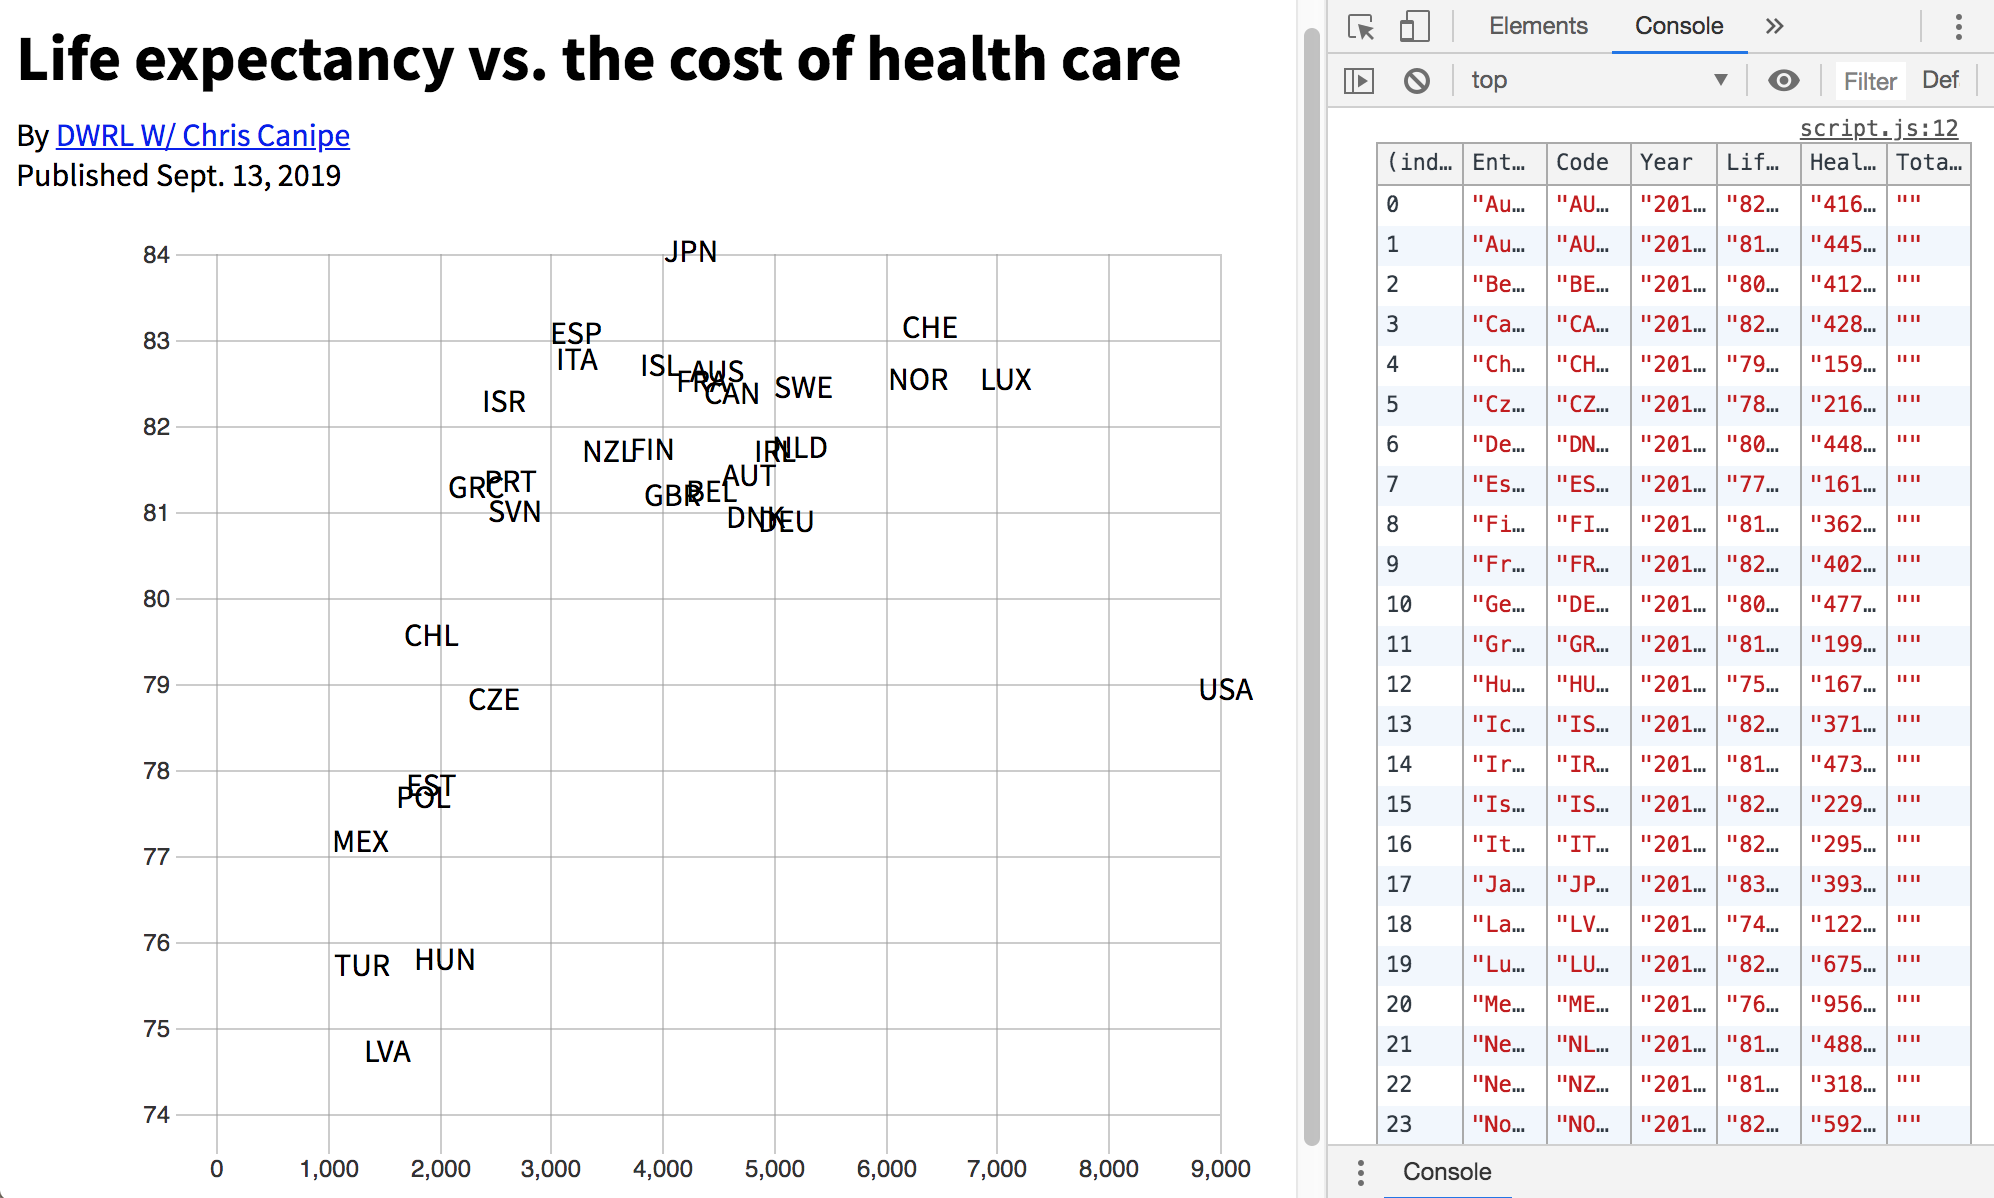 A scatterplot of life expectancy versus the cost of healthcare with country codes spread throughout